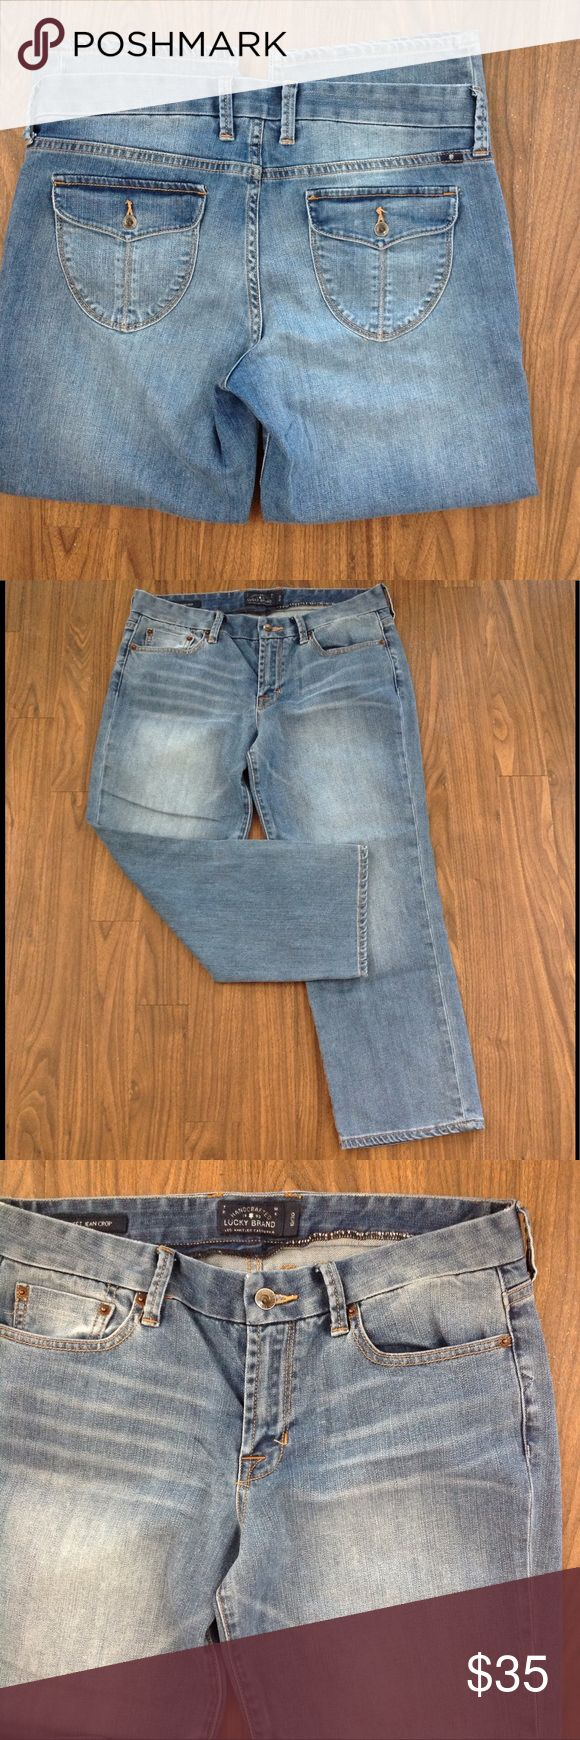 LUCKY brand denim SWEET Jean CROP FLAP STRETCH 30 Lucky brand denim jeans CROP. Size 30. Sweet jeans crop style. Stretch. Flap pockets. Logo on back. Zipper fly. Good preowned condition. Please look at all pictures before you purchase. Have any questions just ask. Thanks! Lucky Brand Jeans Ankle & Cropped